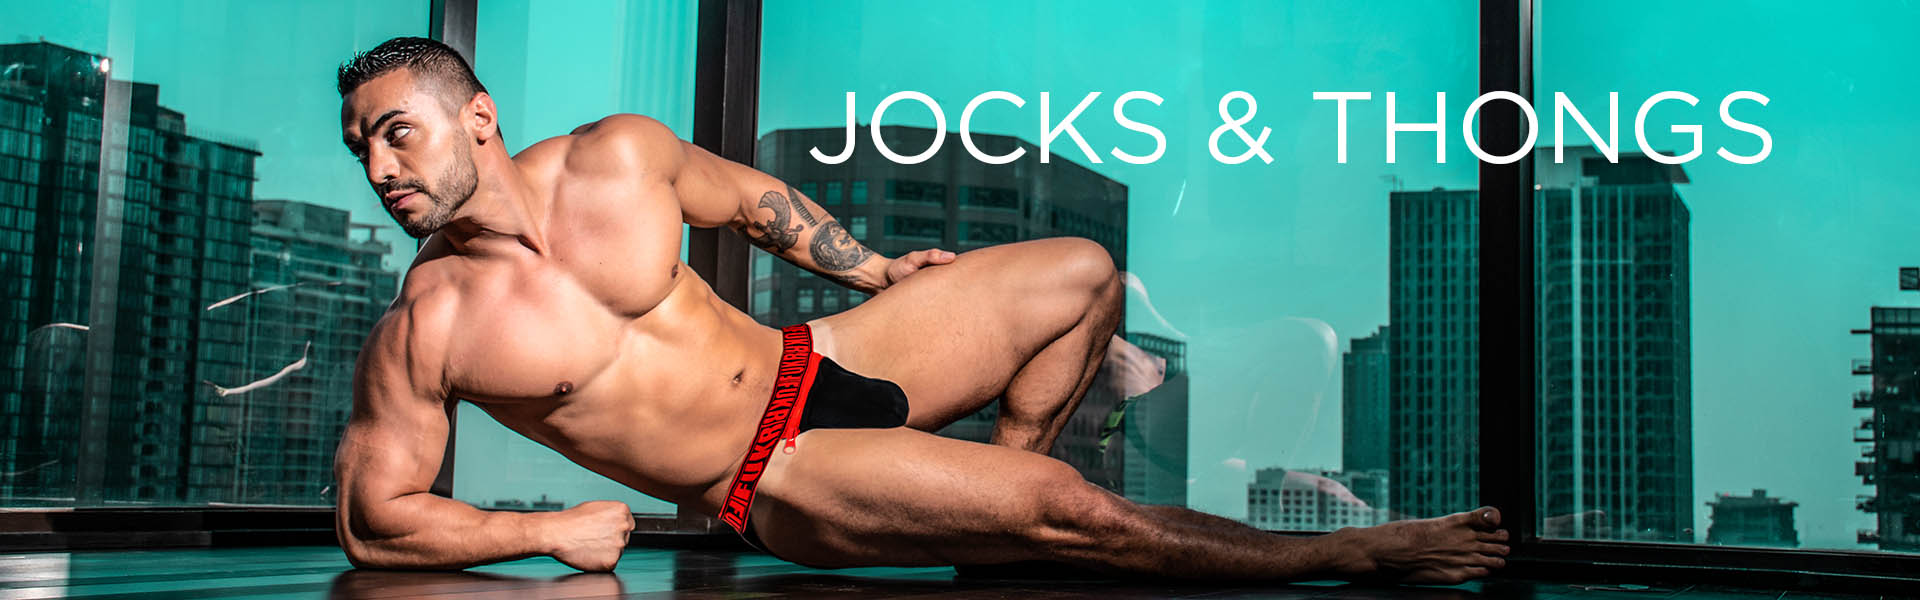 Jocks & Thongs